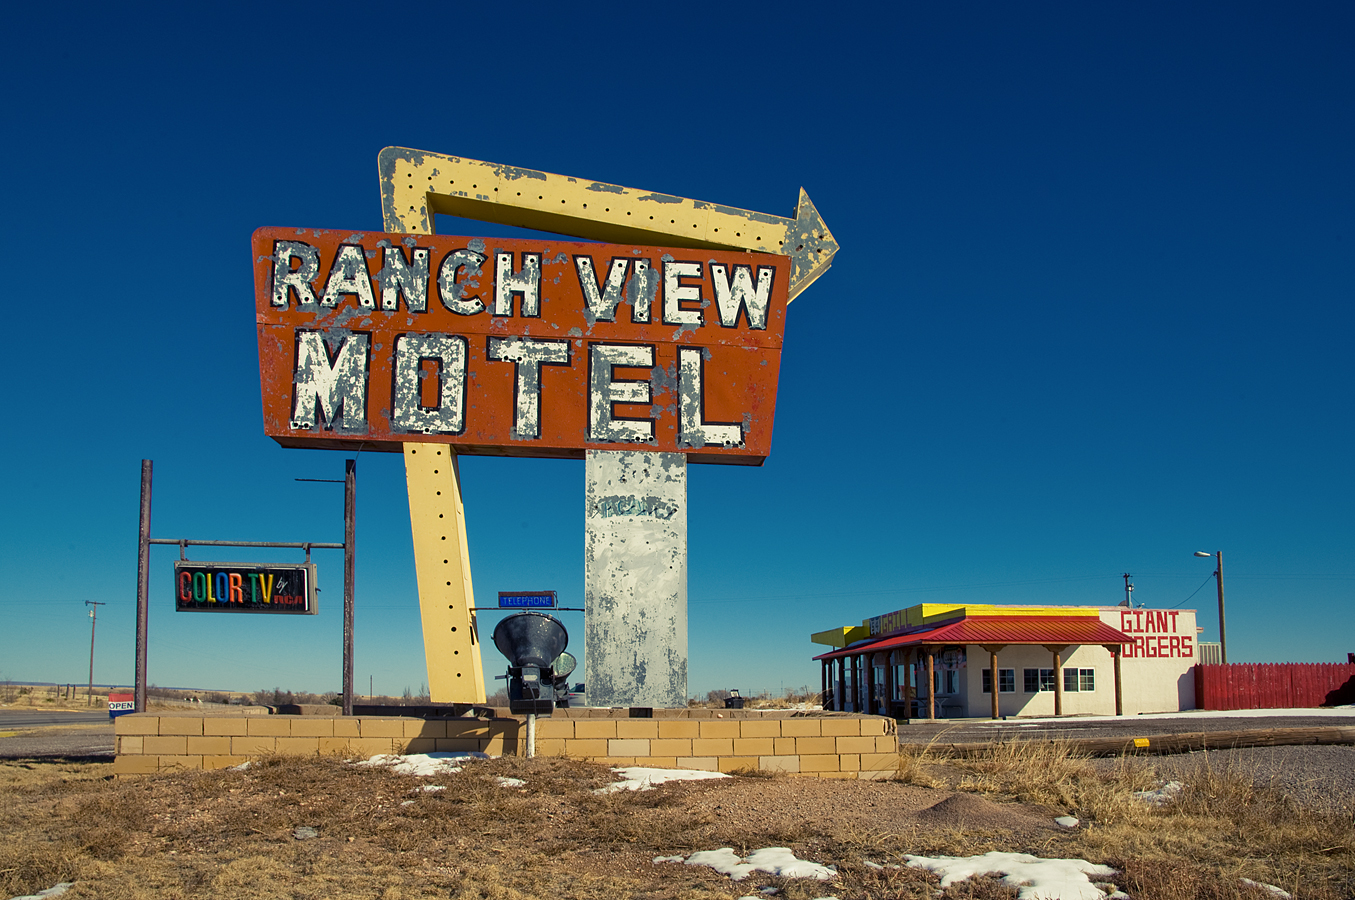 Ranch View Motel - Vaughn, New Mexico U.S.A. - February 14, 2011